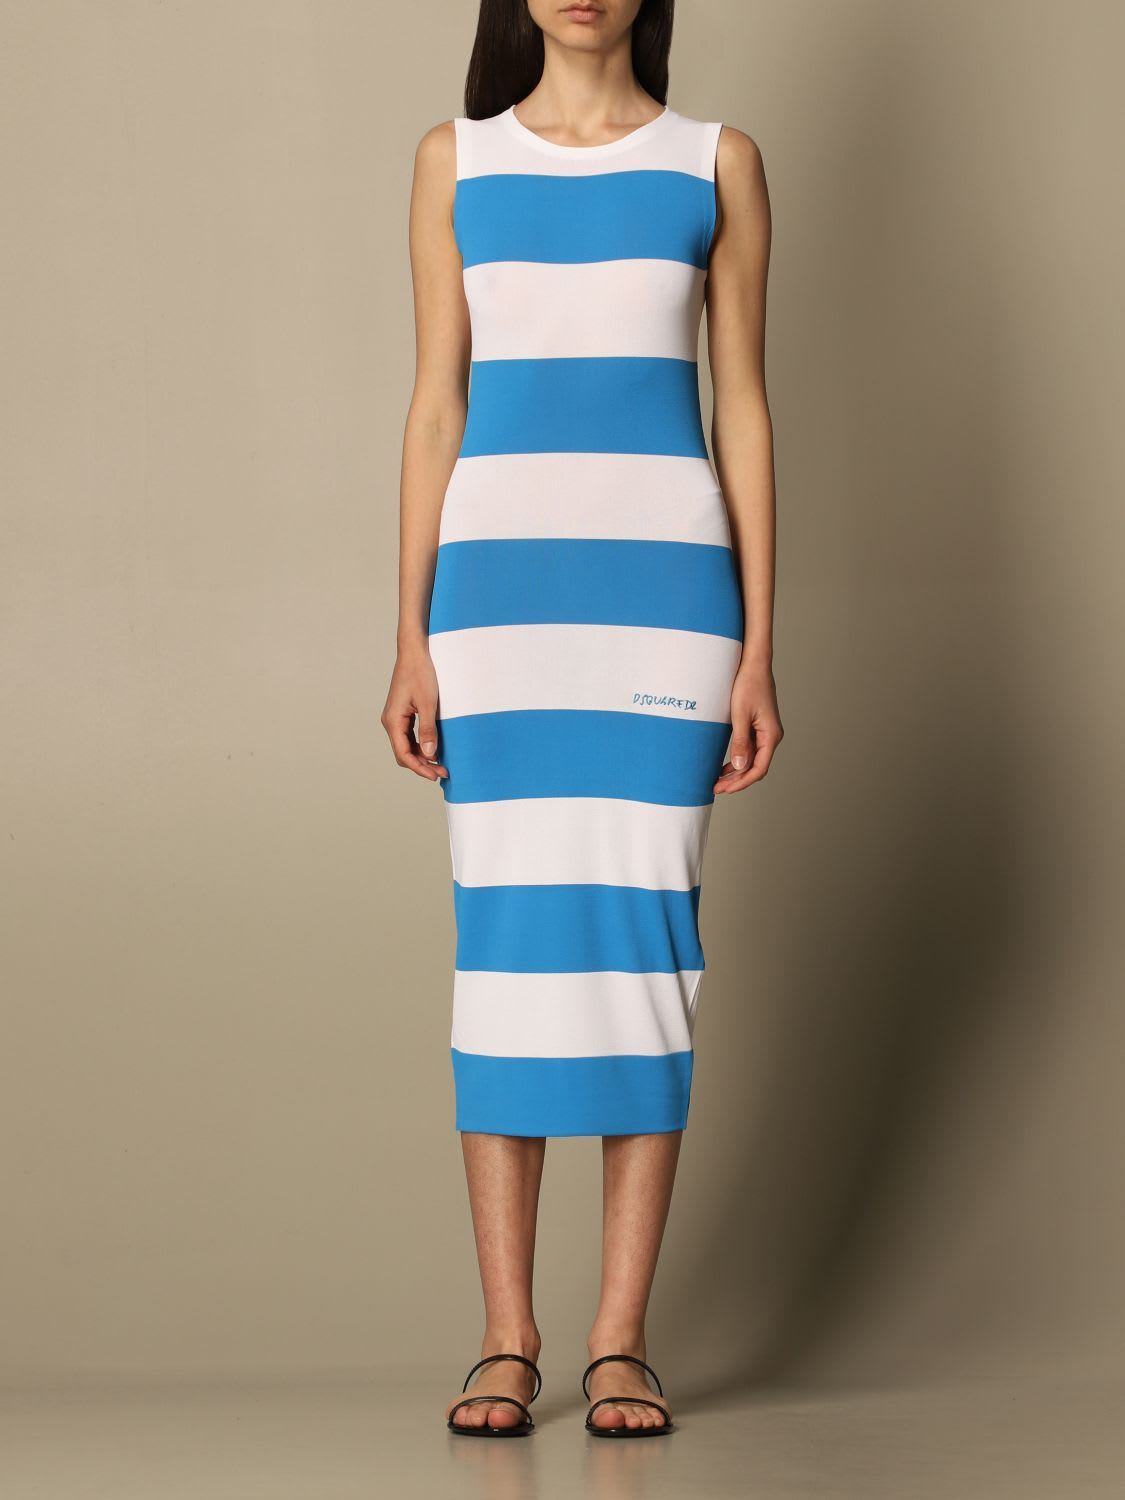 Buy Dsquared2 Dress Dsquared2 Midi Dress In Striped Jersey online, shop Dsquared2 with free shipping